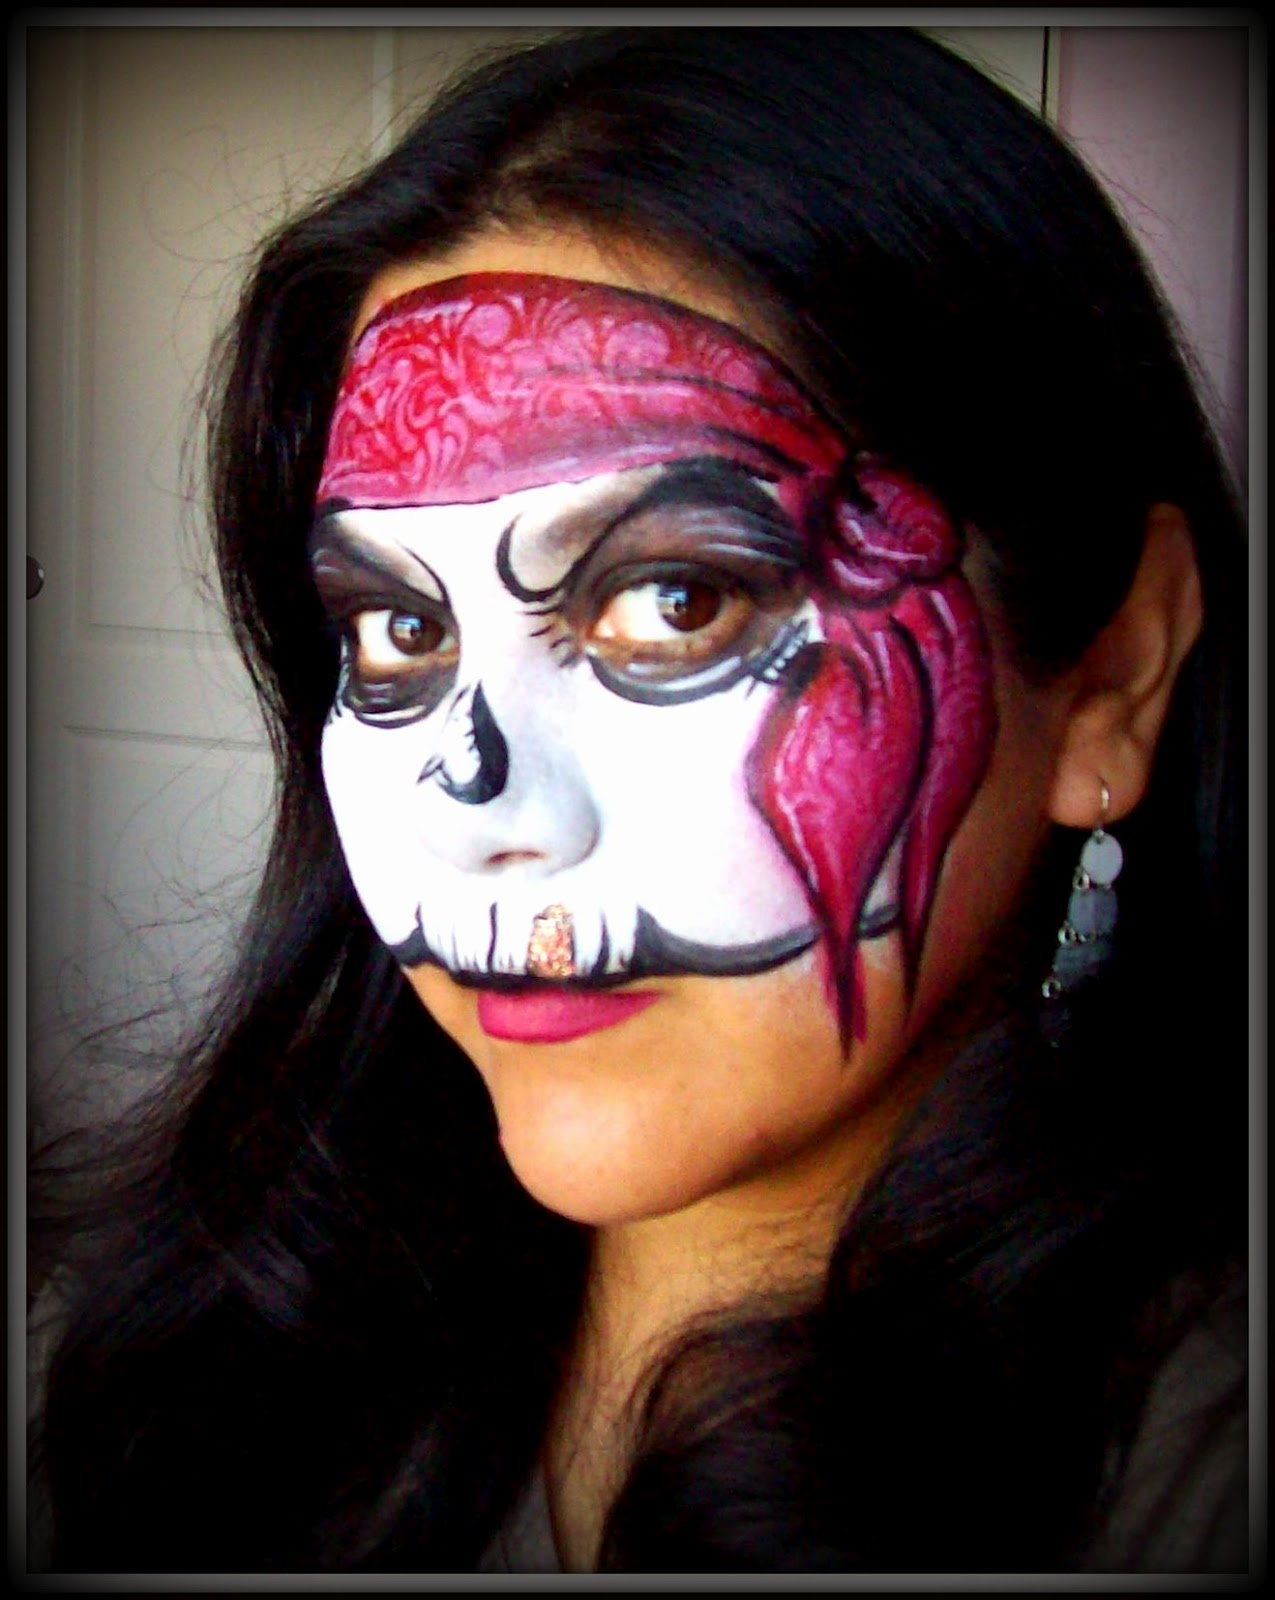 Face Painting: Pirate!! Step by Step. Face Painting